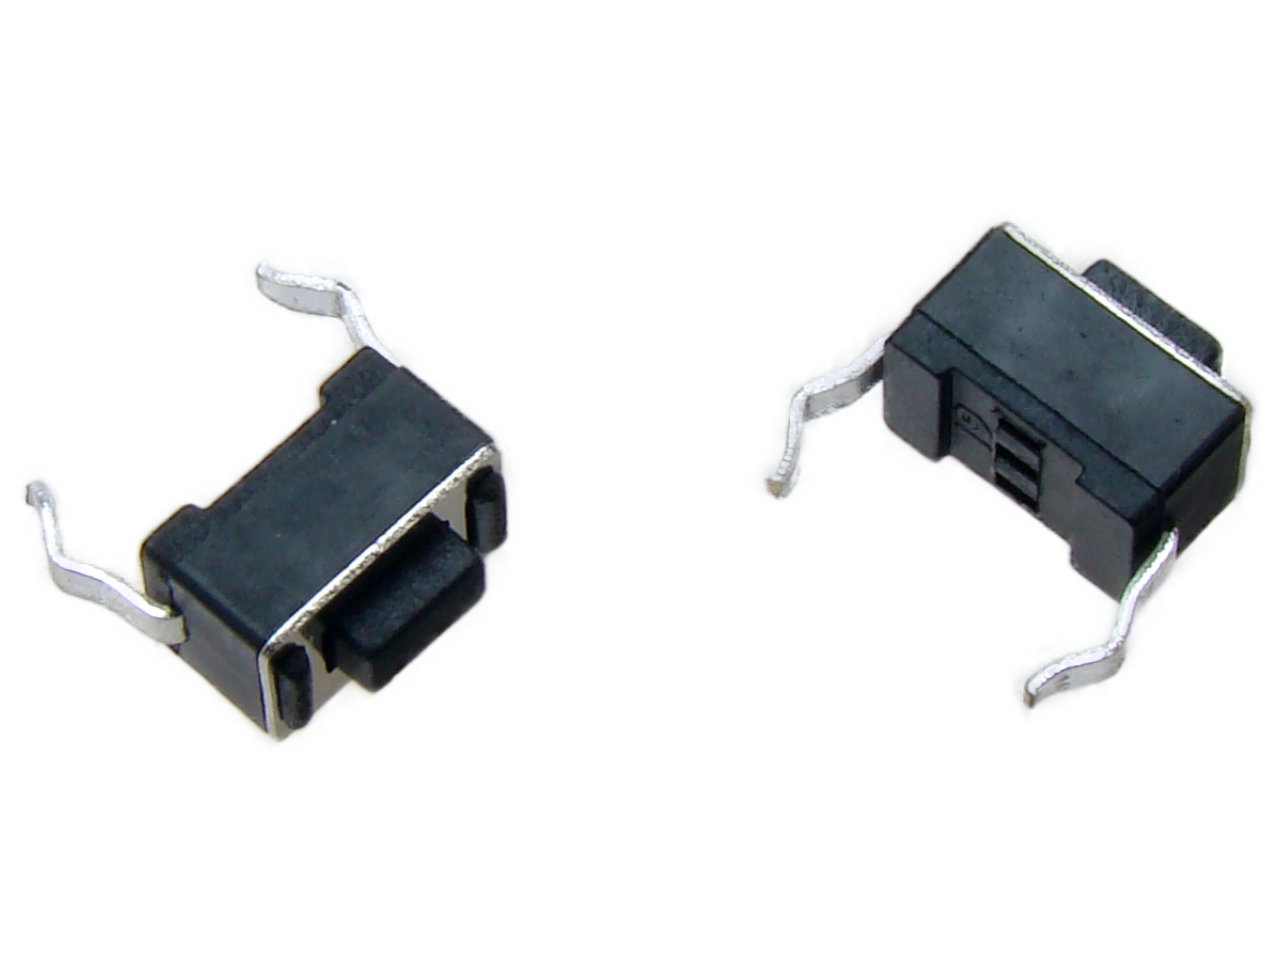 Tact Switch TS-03 2nogi 3x6x4.3H h=4.3mm KFC Pbf